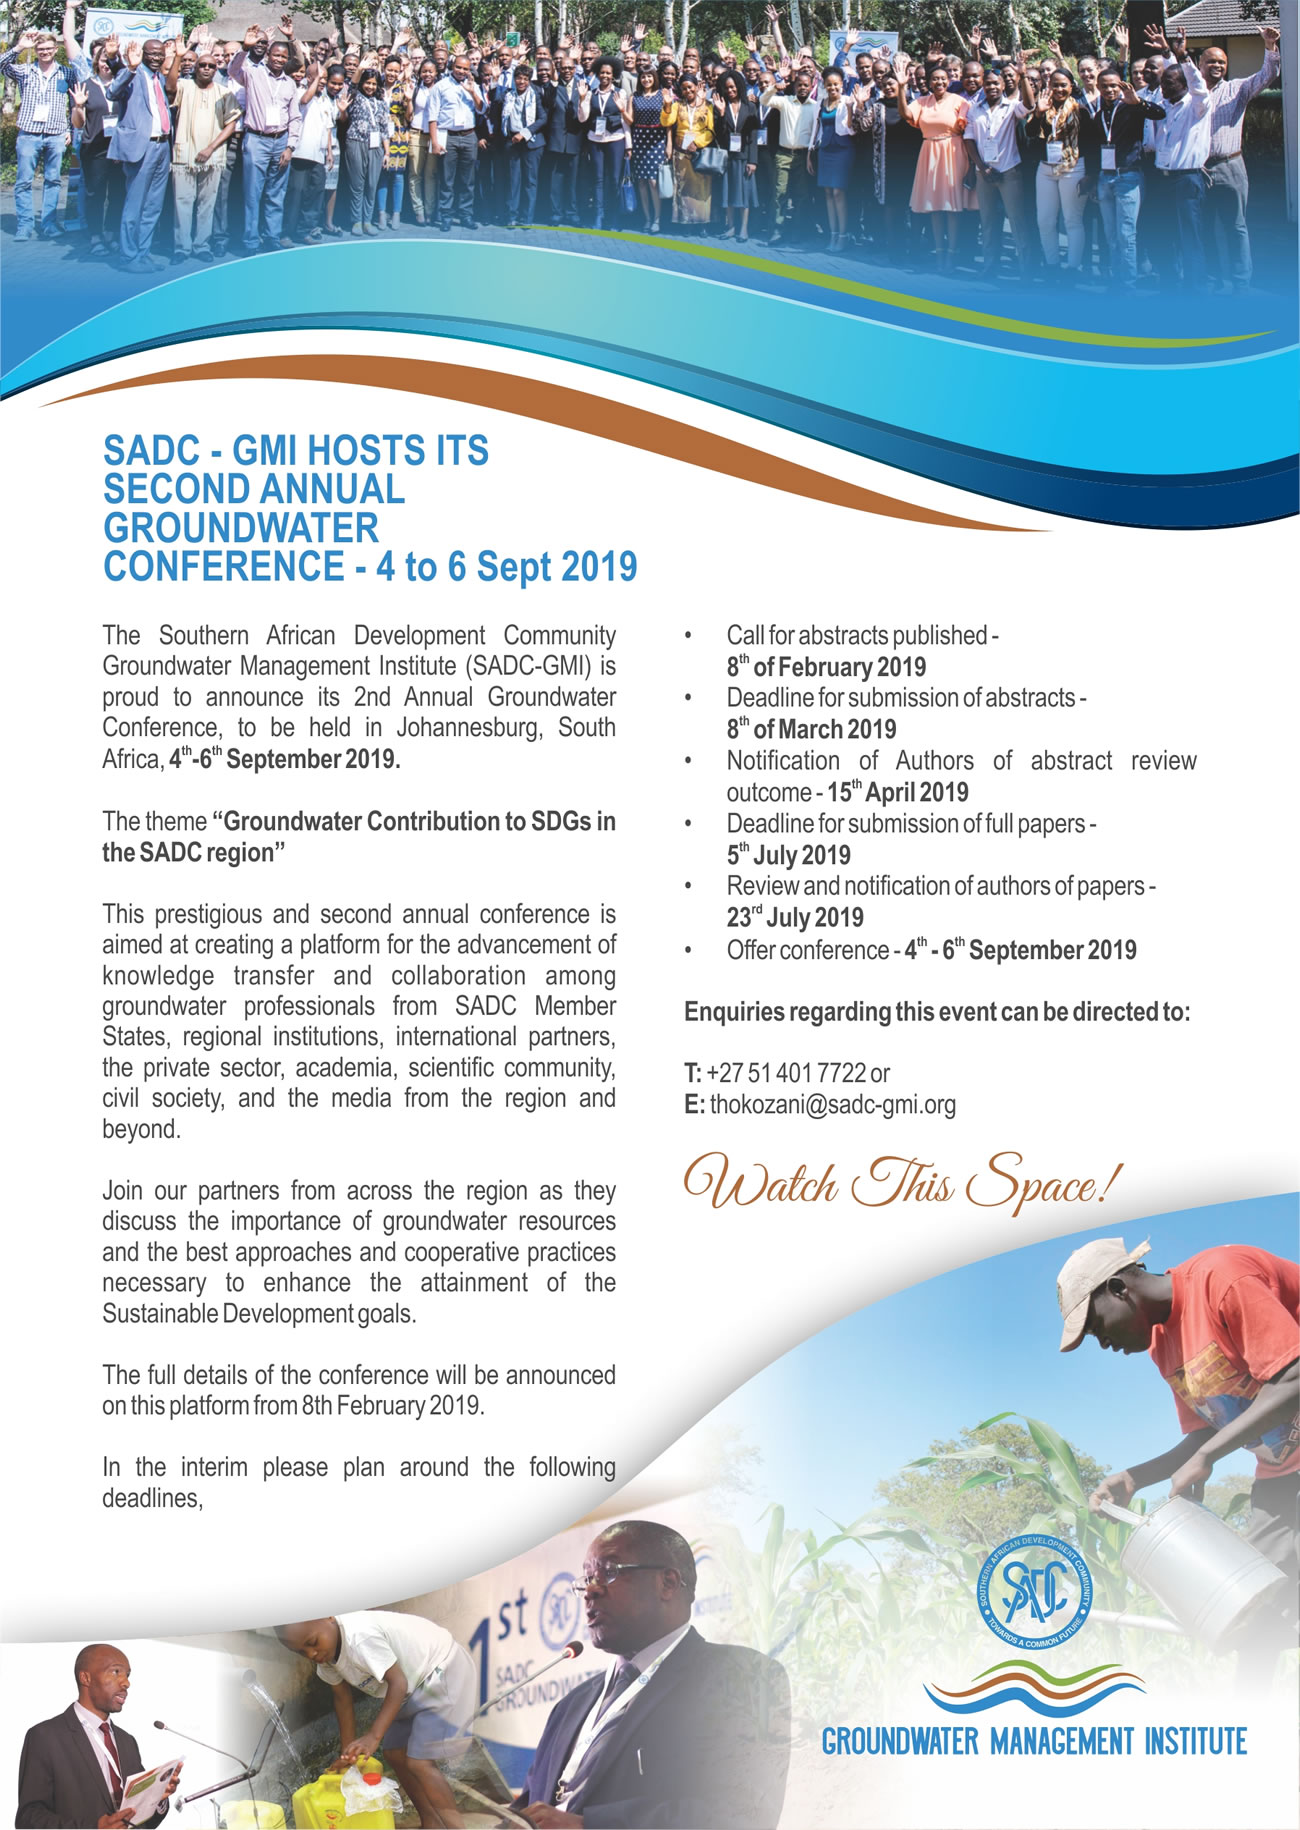 SADC-GMI Hosts its second annual Groundwater Conference 4 to 6 Sept 2019 1